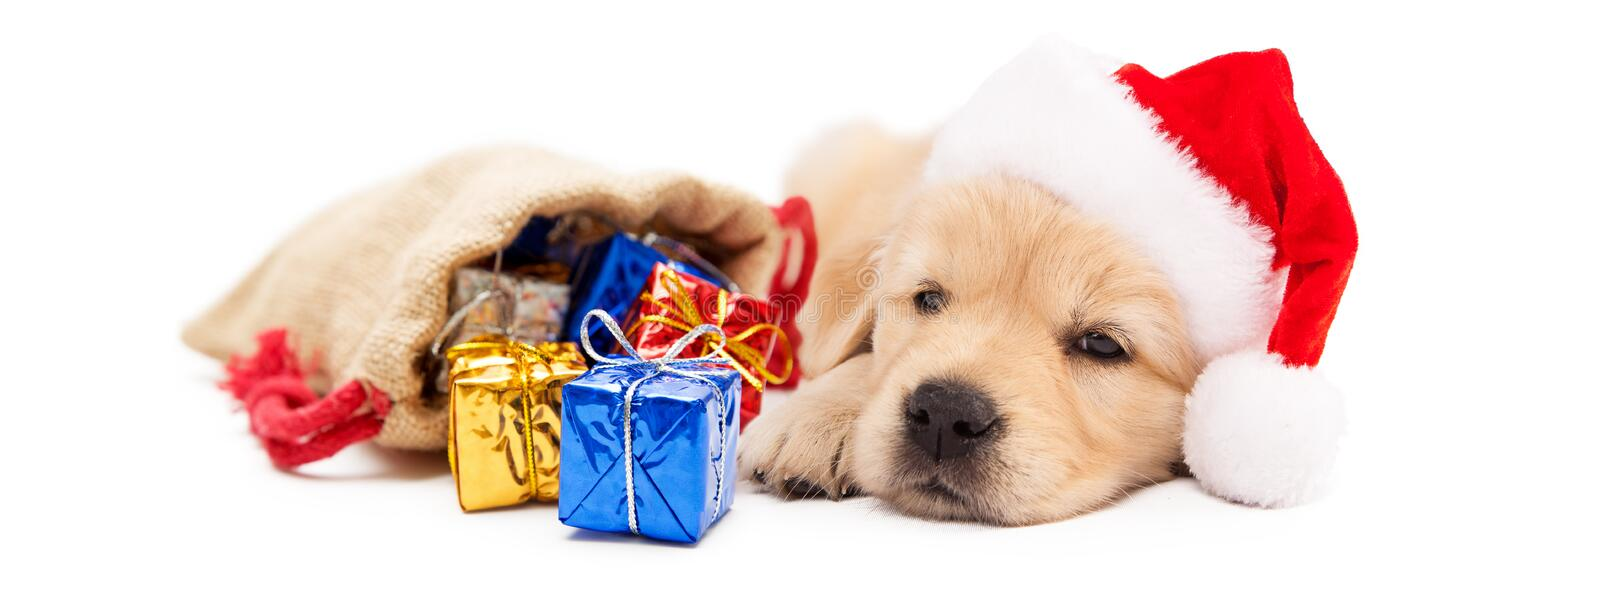 Sleepy Puppy With Christmas Gifts - Horizontal Banner stock image